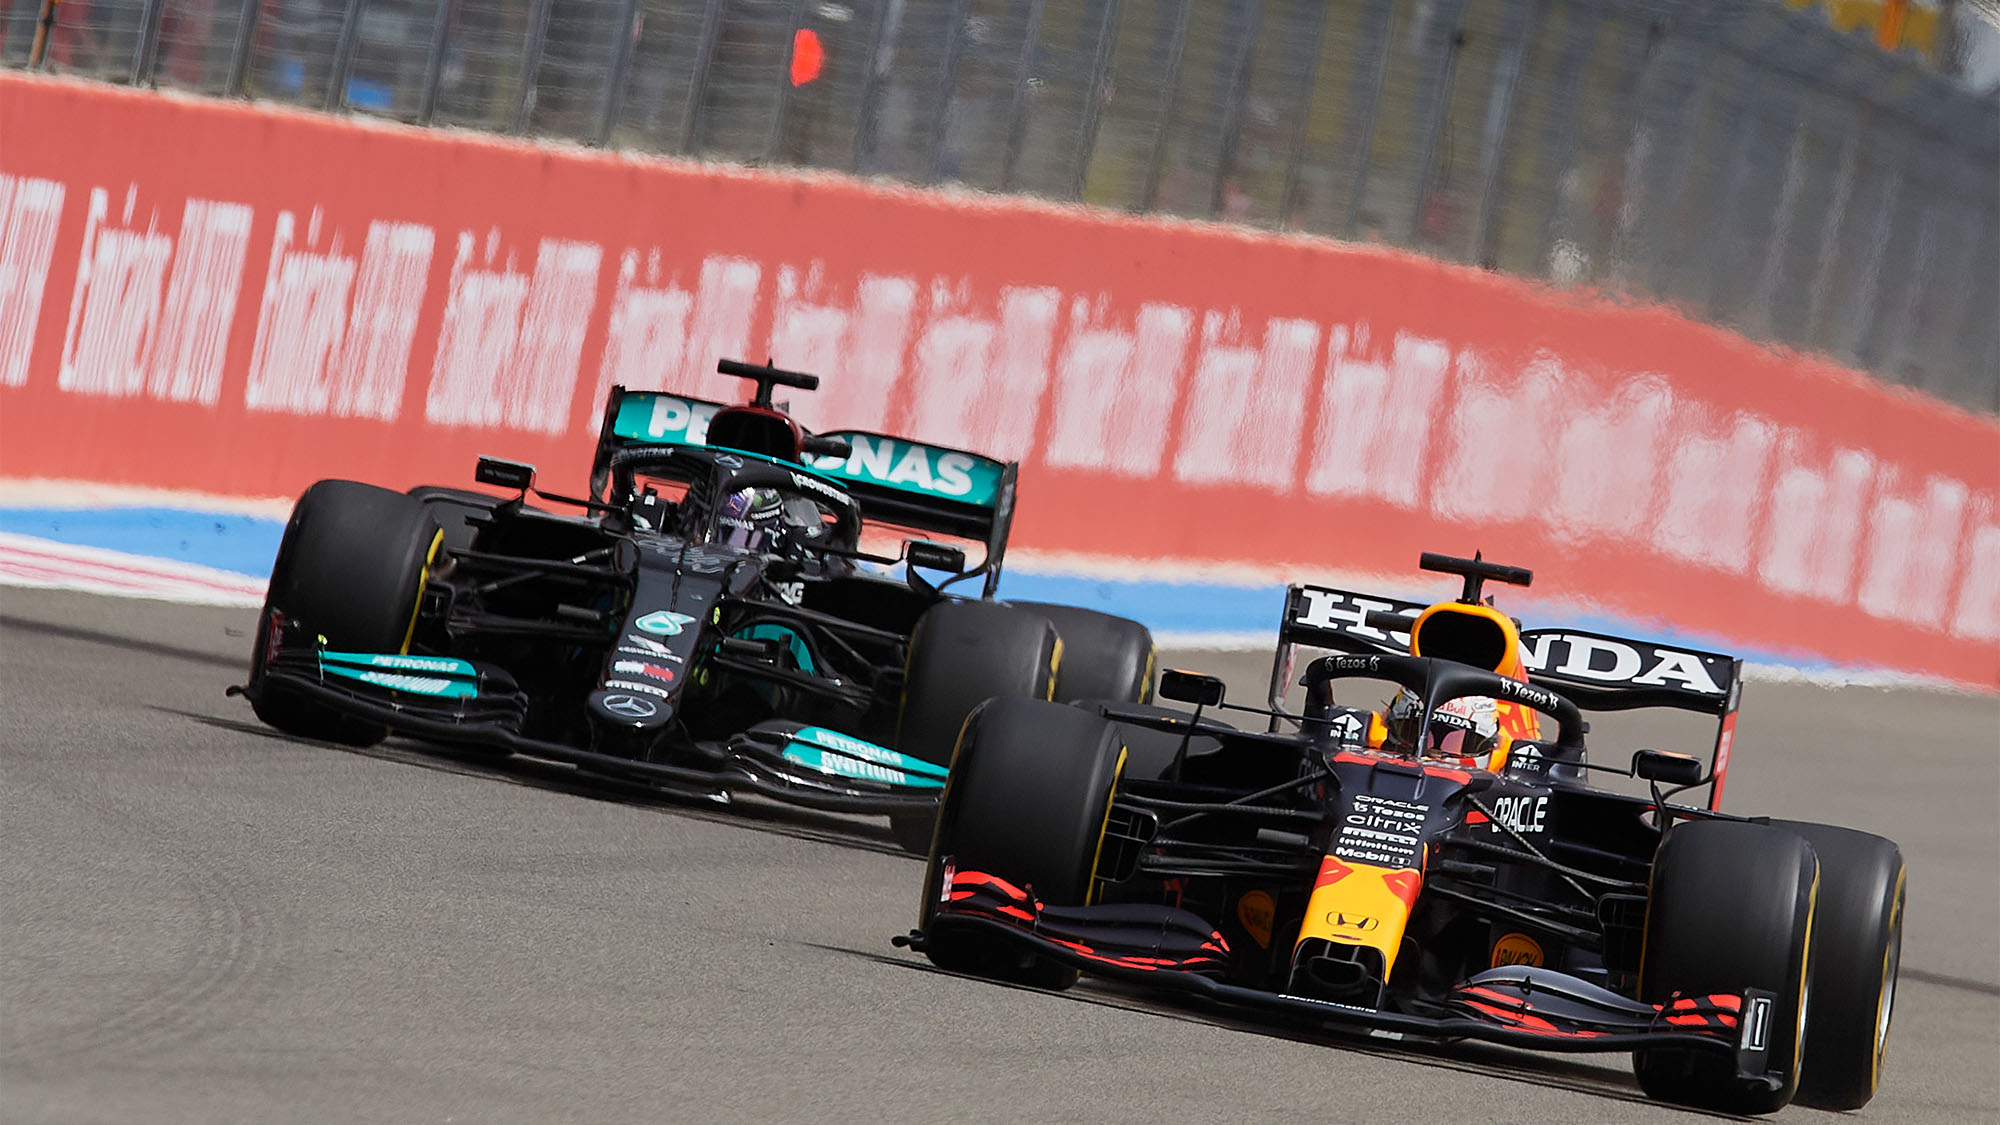 Max Verstappen of Netherlands driving the (33) Red Bull Racing RB16B Honda and Lewis Hamilton of Great Britain driving the (44) Mercedes AMG Petronas F1 Team Mercedes W12 during the F1 Grand Prix of France at Circuit Paul Ricard on June 27, 2021 in Le Castellet, France. (Photo by Jose Breton/Pics Action/NurPhoto via Getty Images)